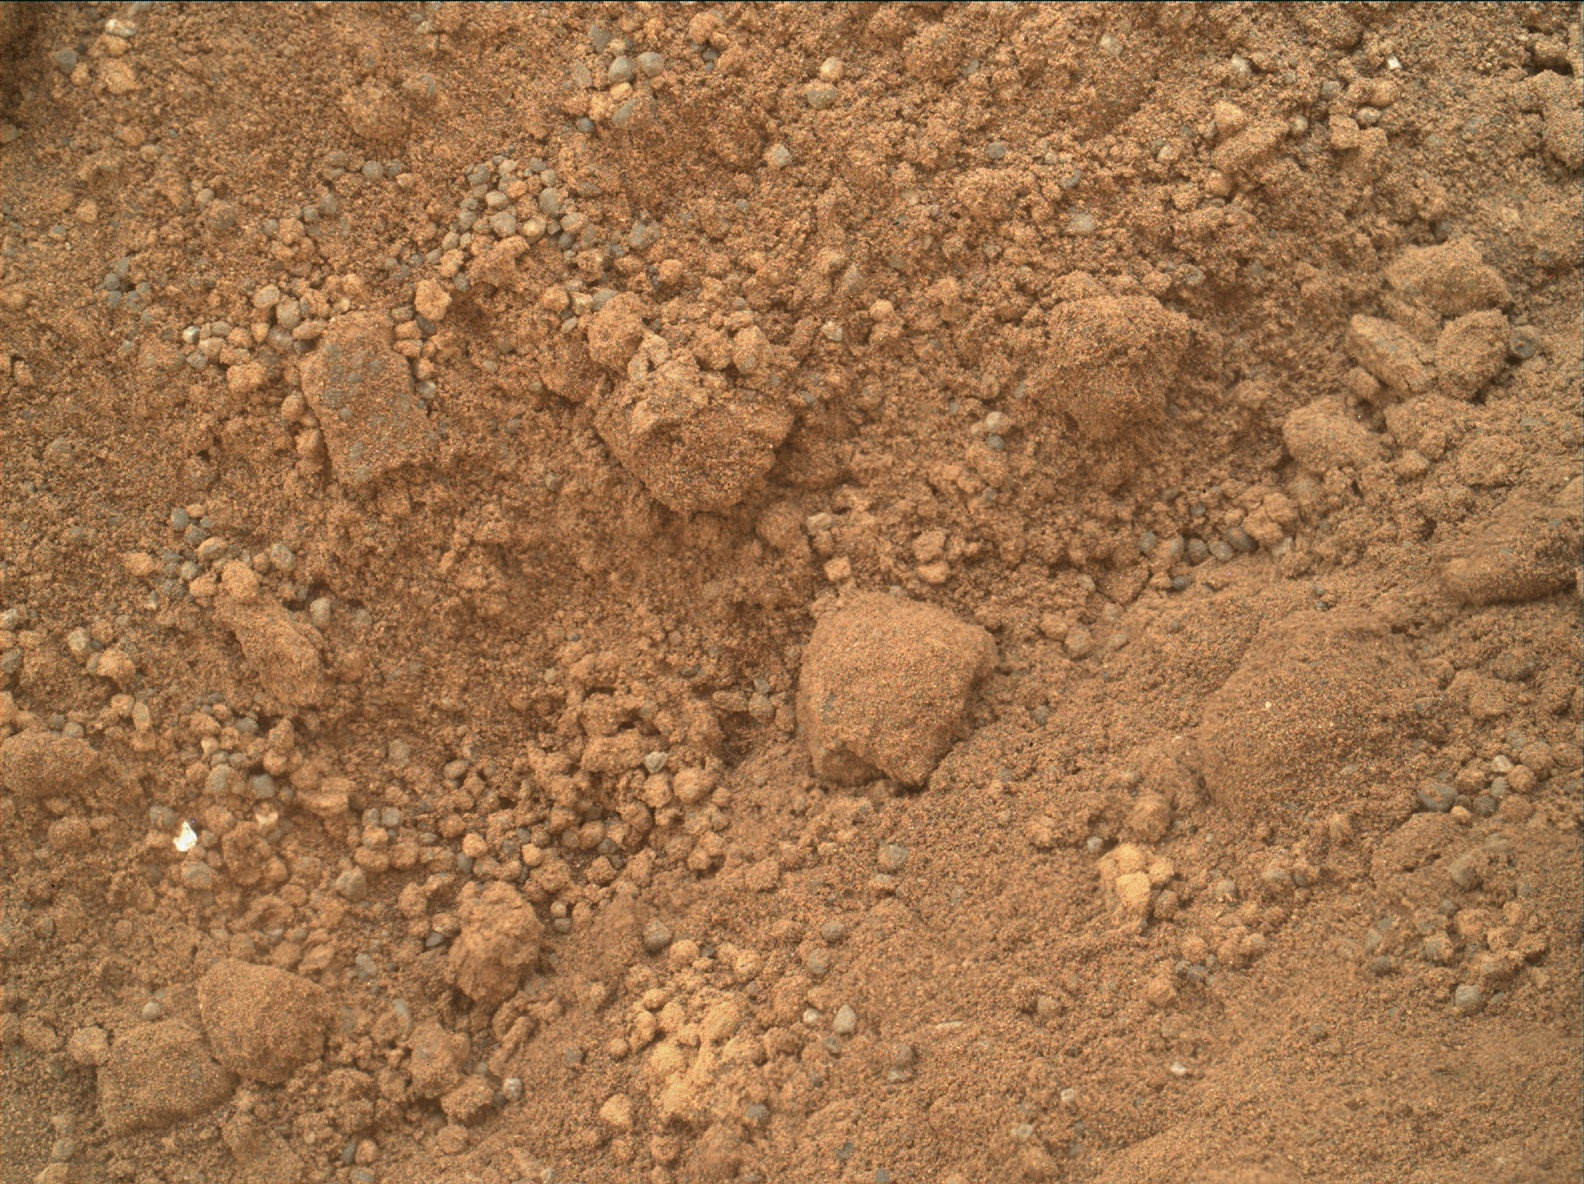 Rendezvous Mars Science Lab Curiosity: Sparkling bits in ...